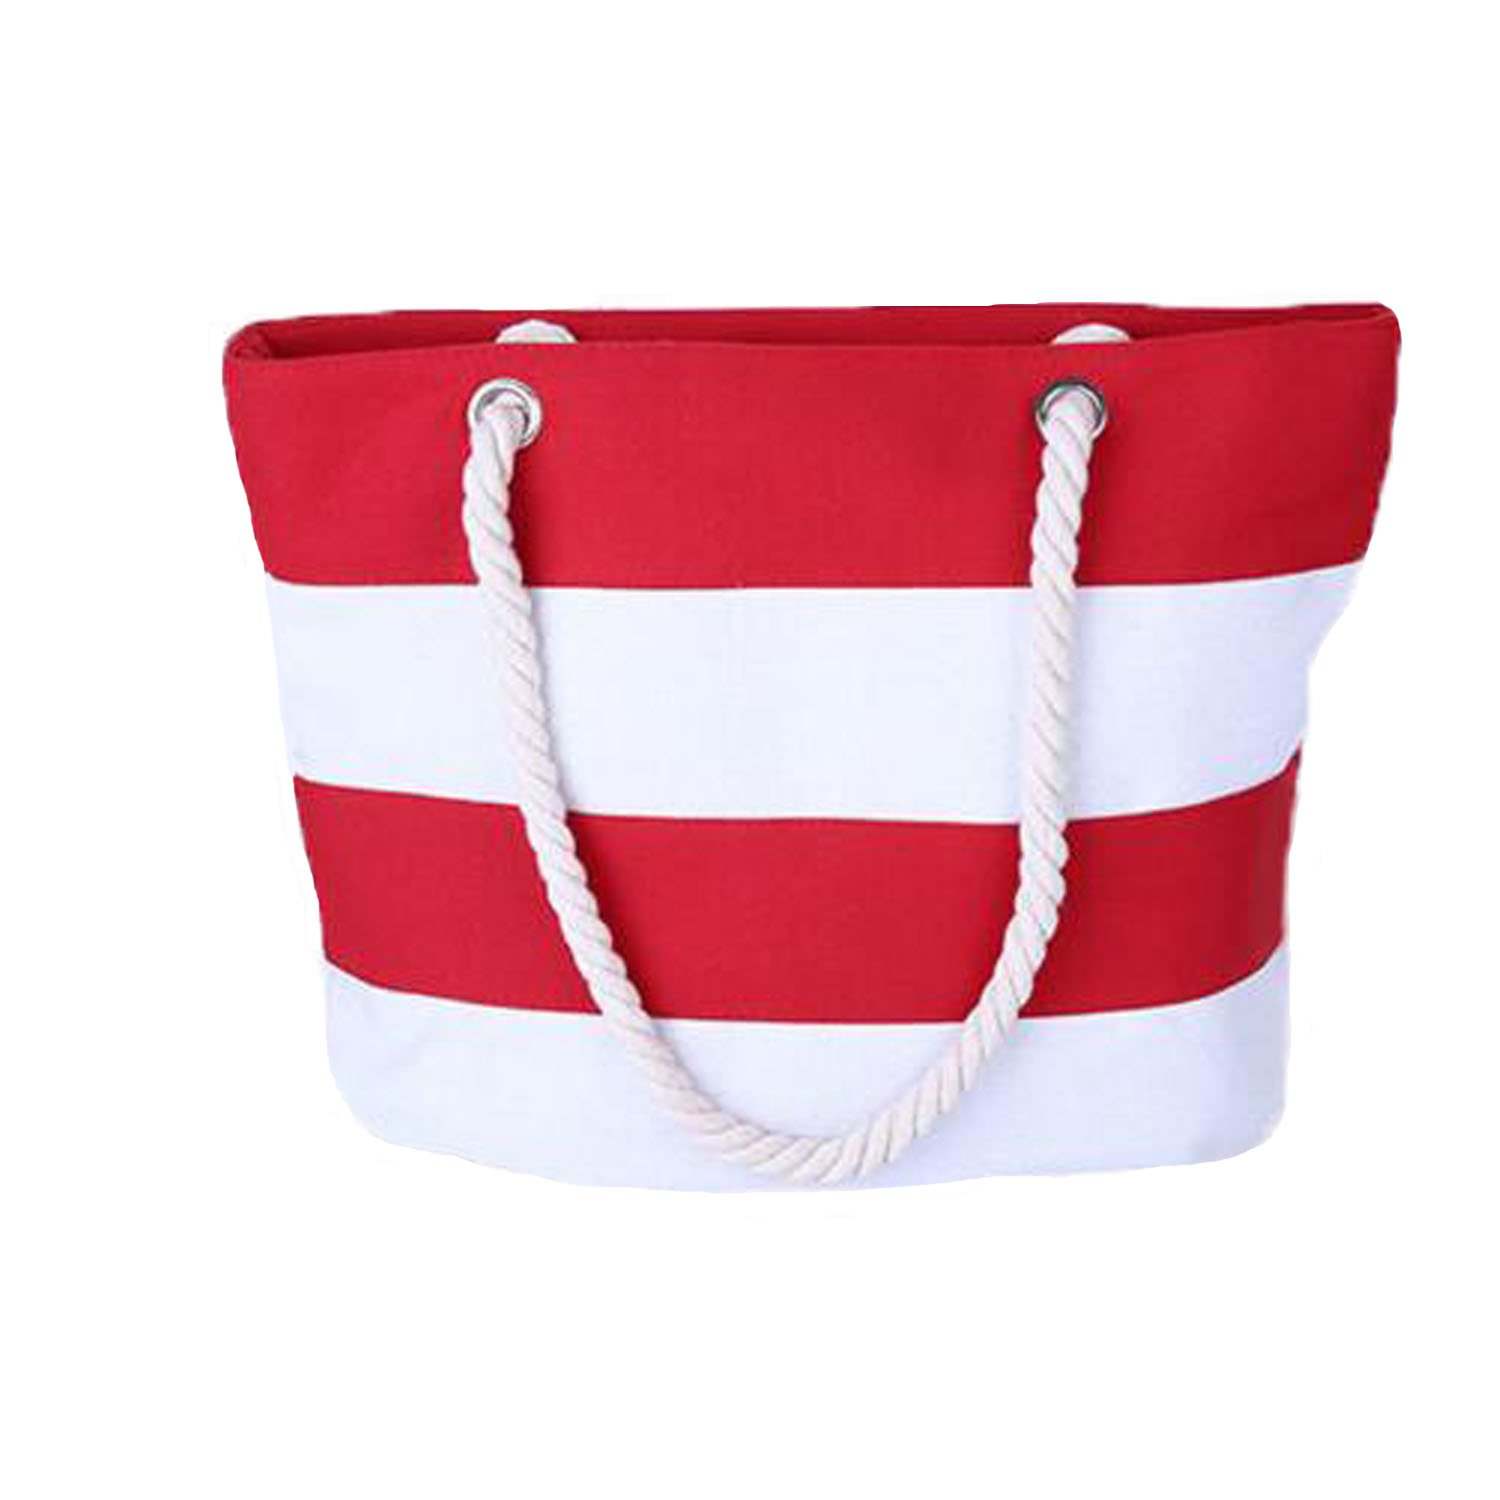 Inpluer Women's Travel Tote Beach Bag with Inner Zipper with Rope Handles AB-100